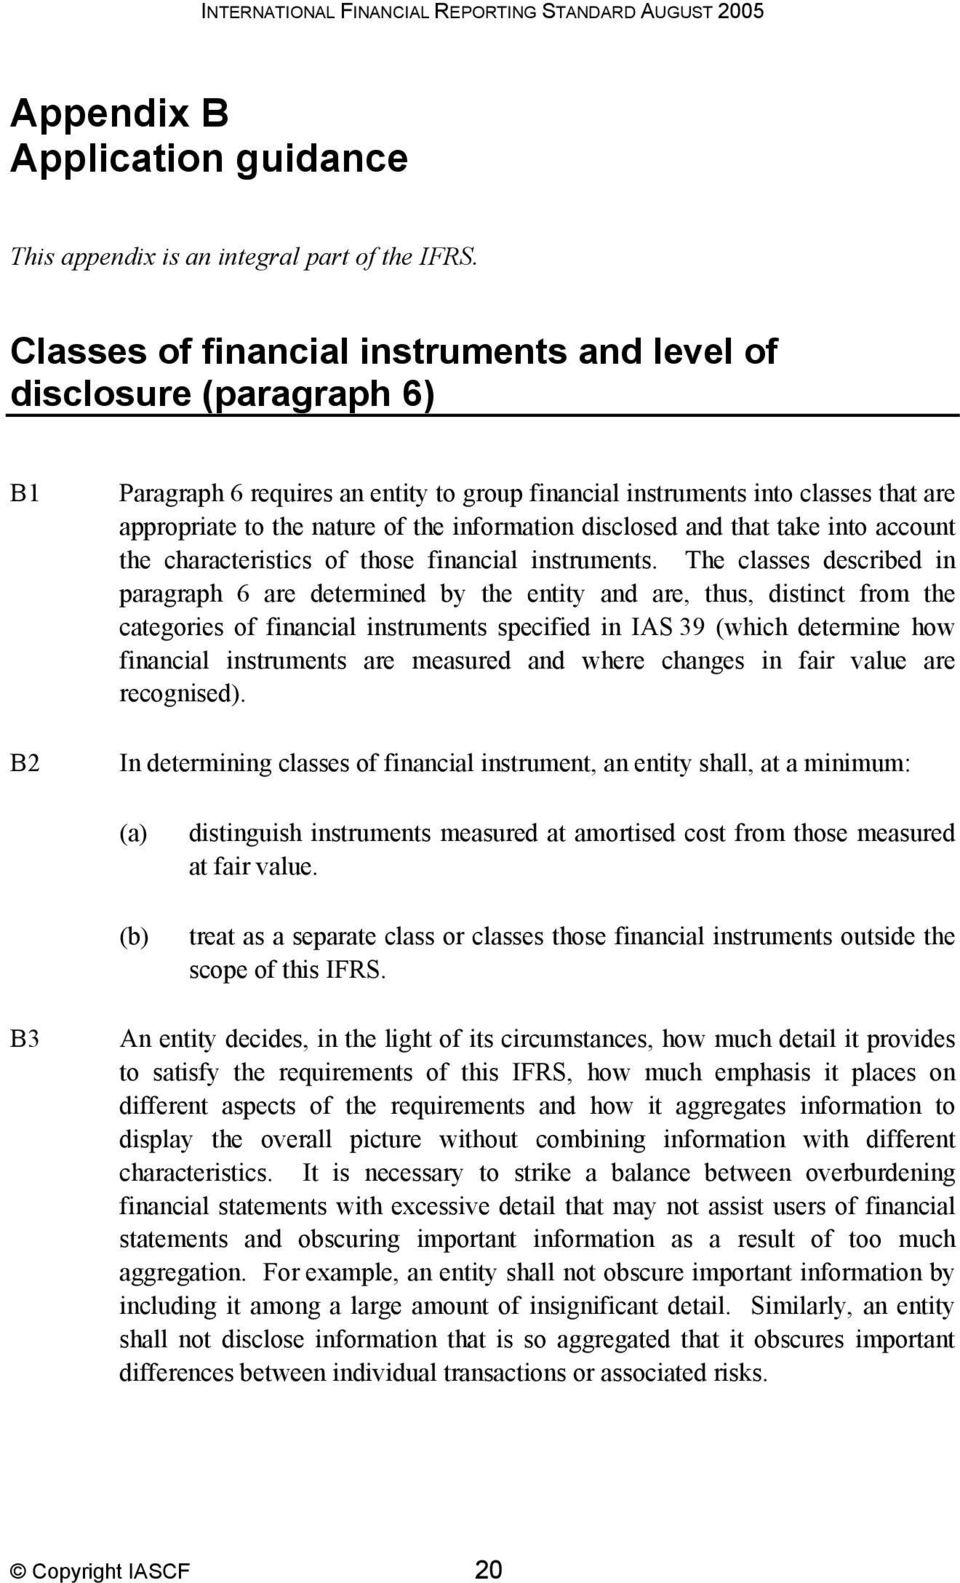 information disclosed and that take into account the characteristics of those financial instruments.